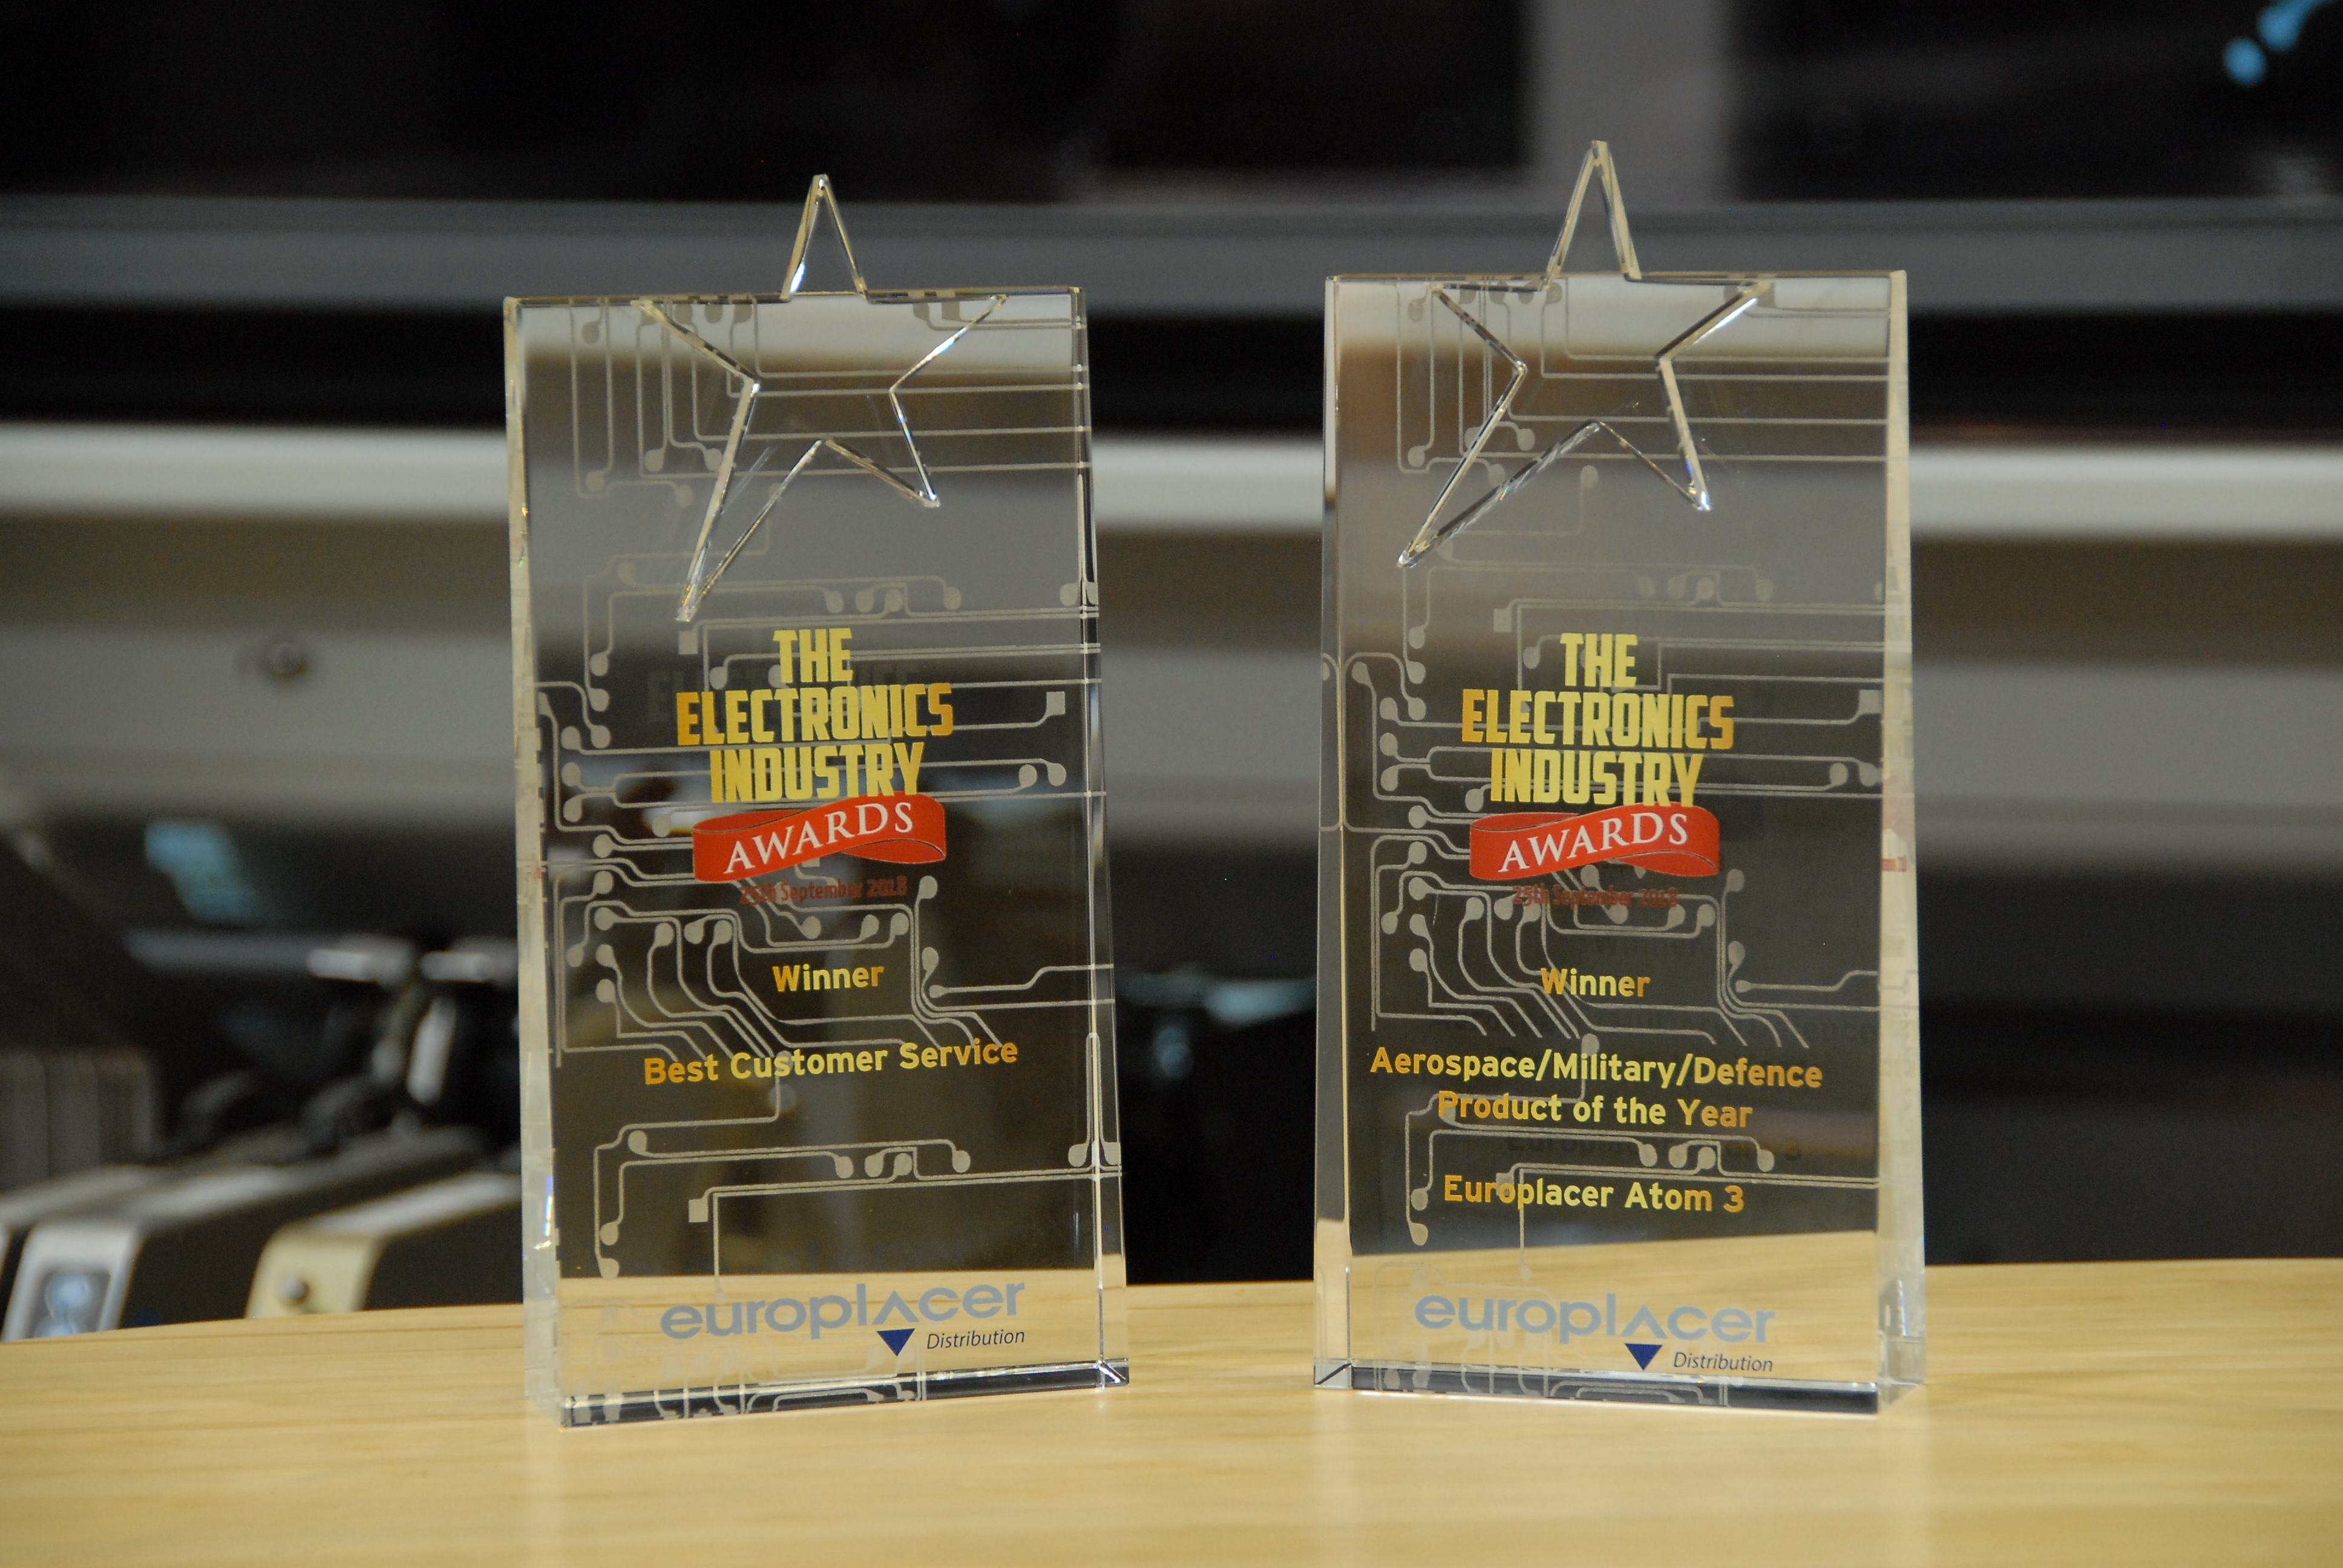 Twin UK Industry Awards for Europlacer Distribution UK